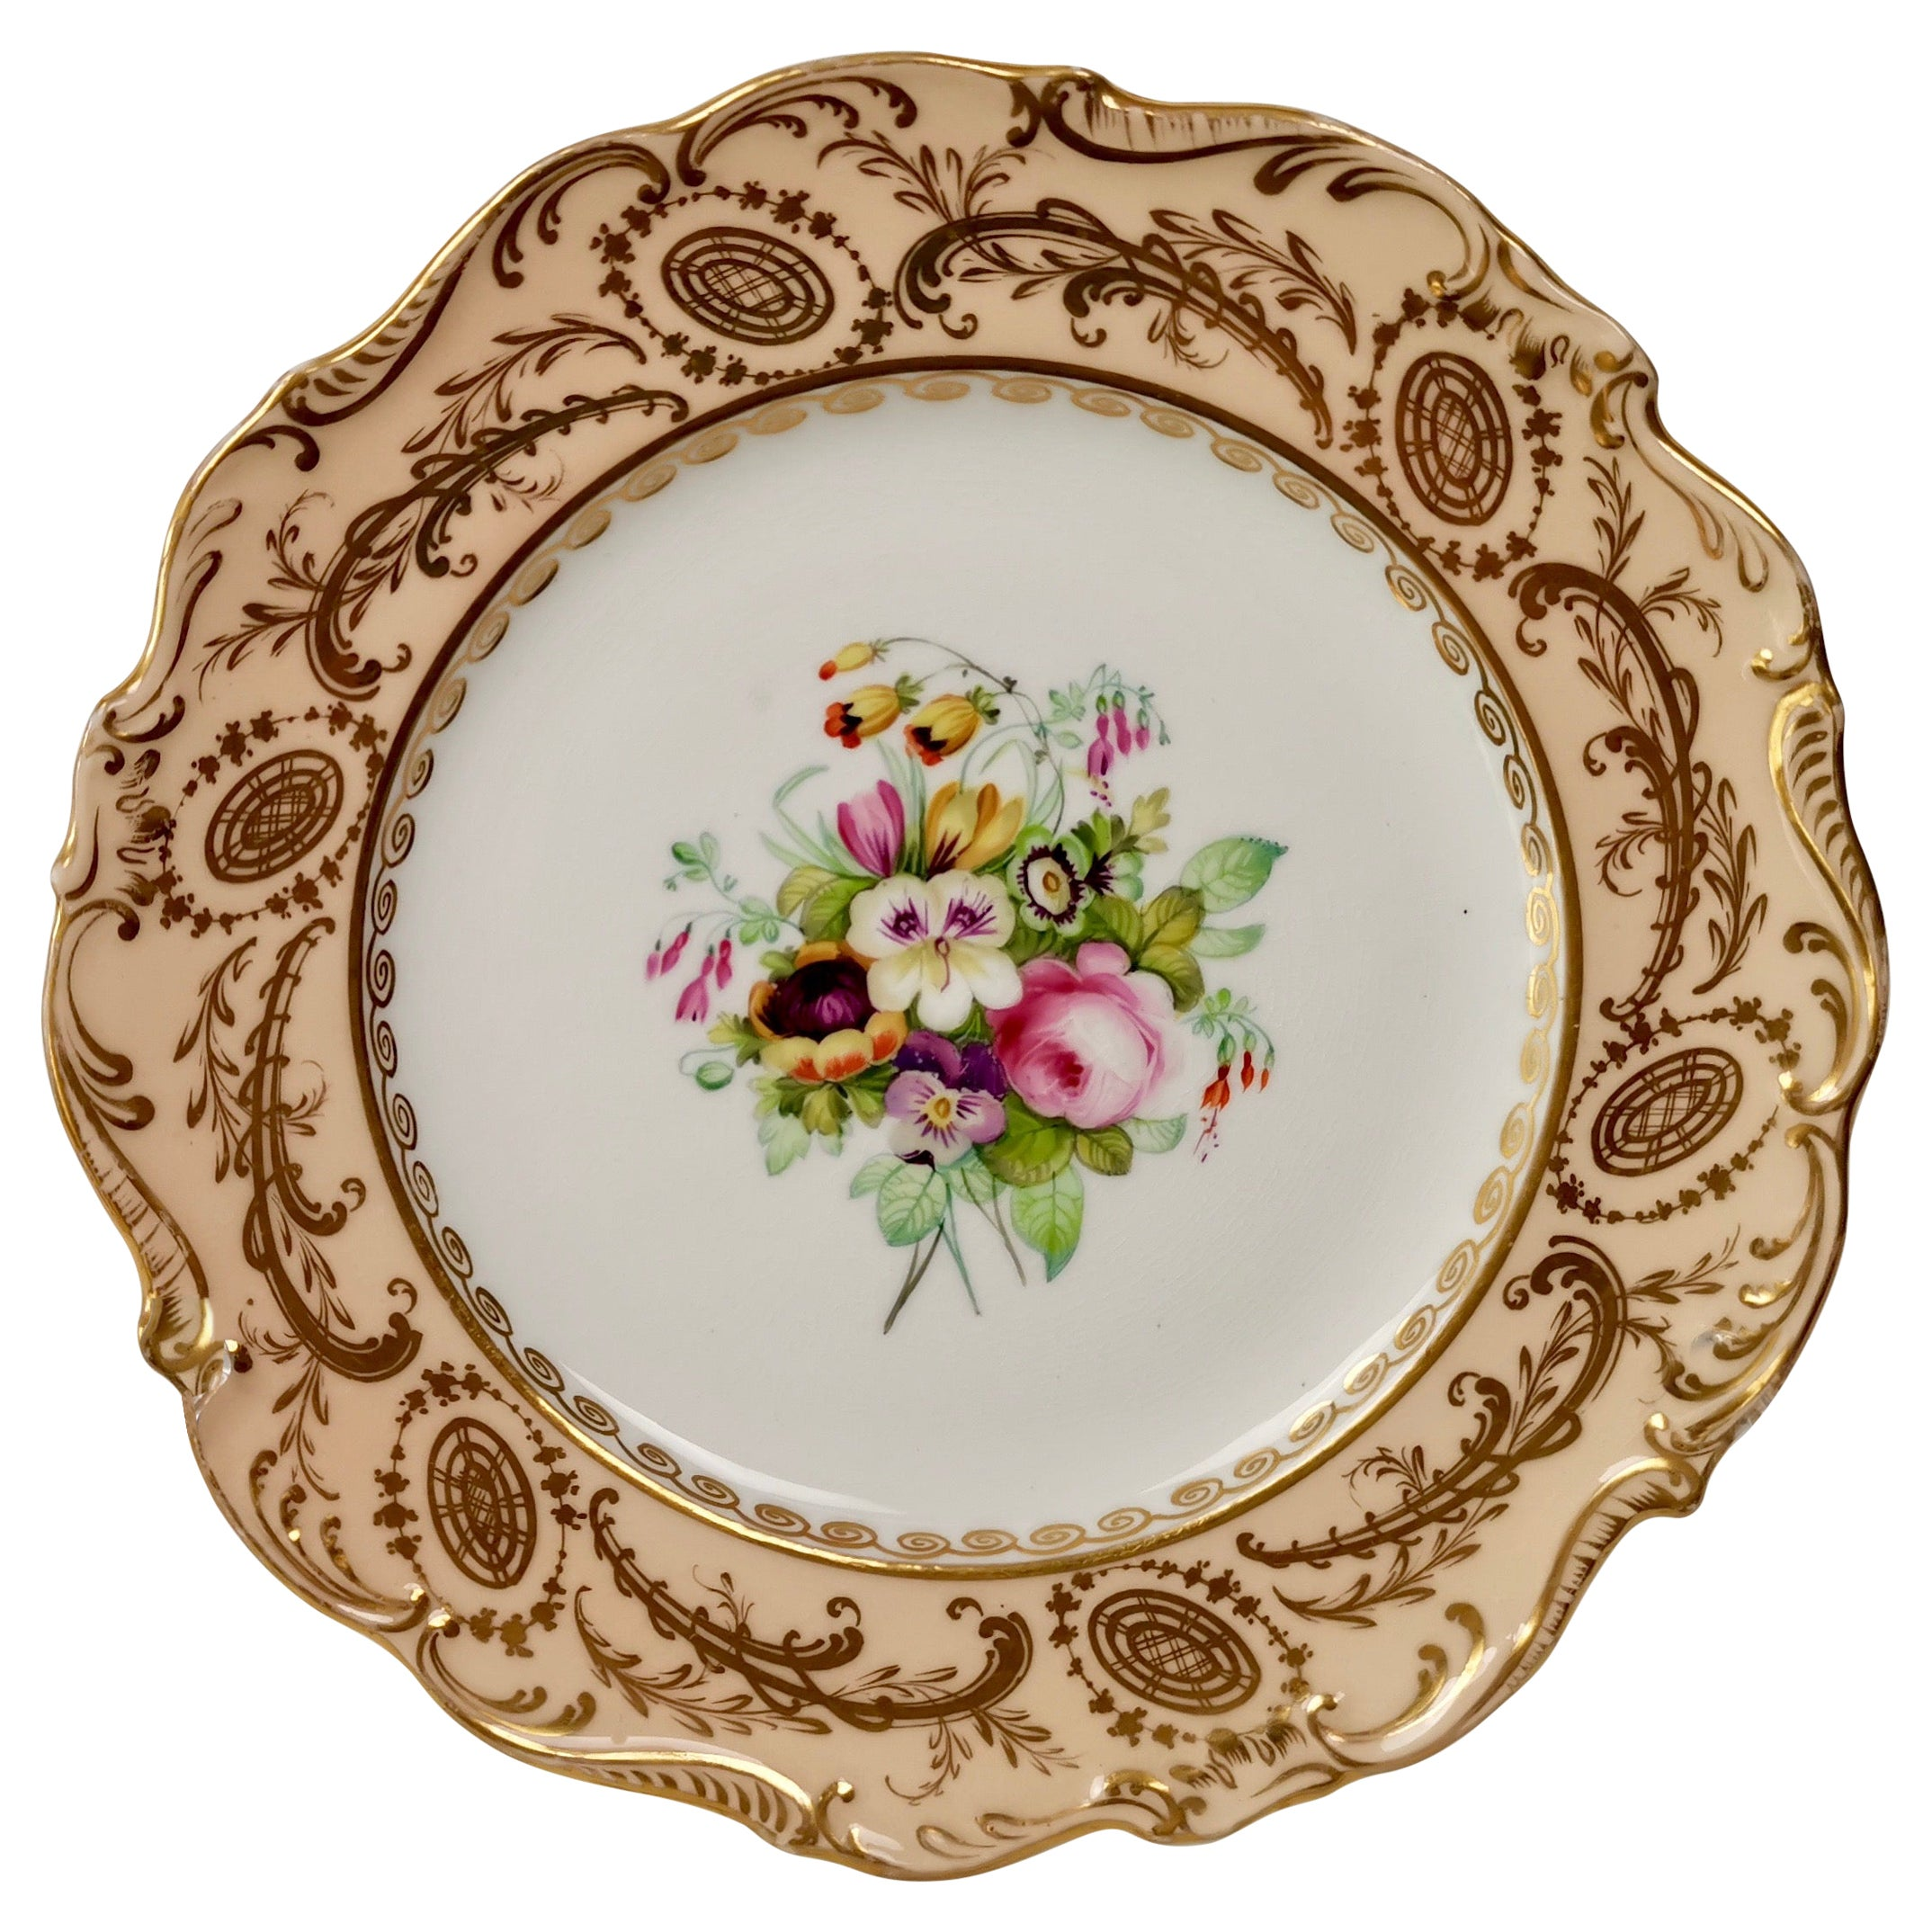 Coalport Plate, Peach with Hand Painted Flowers, Attributed to Thomas Dixon